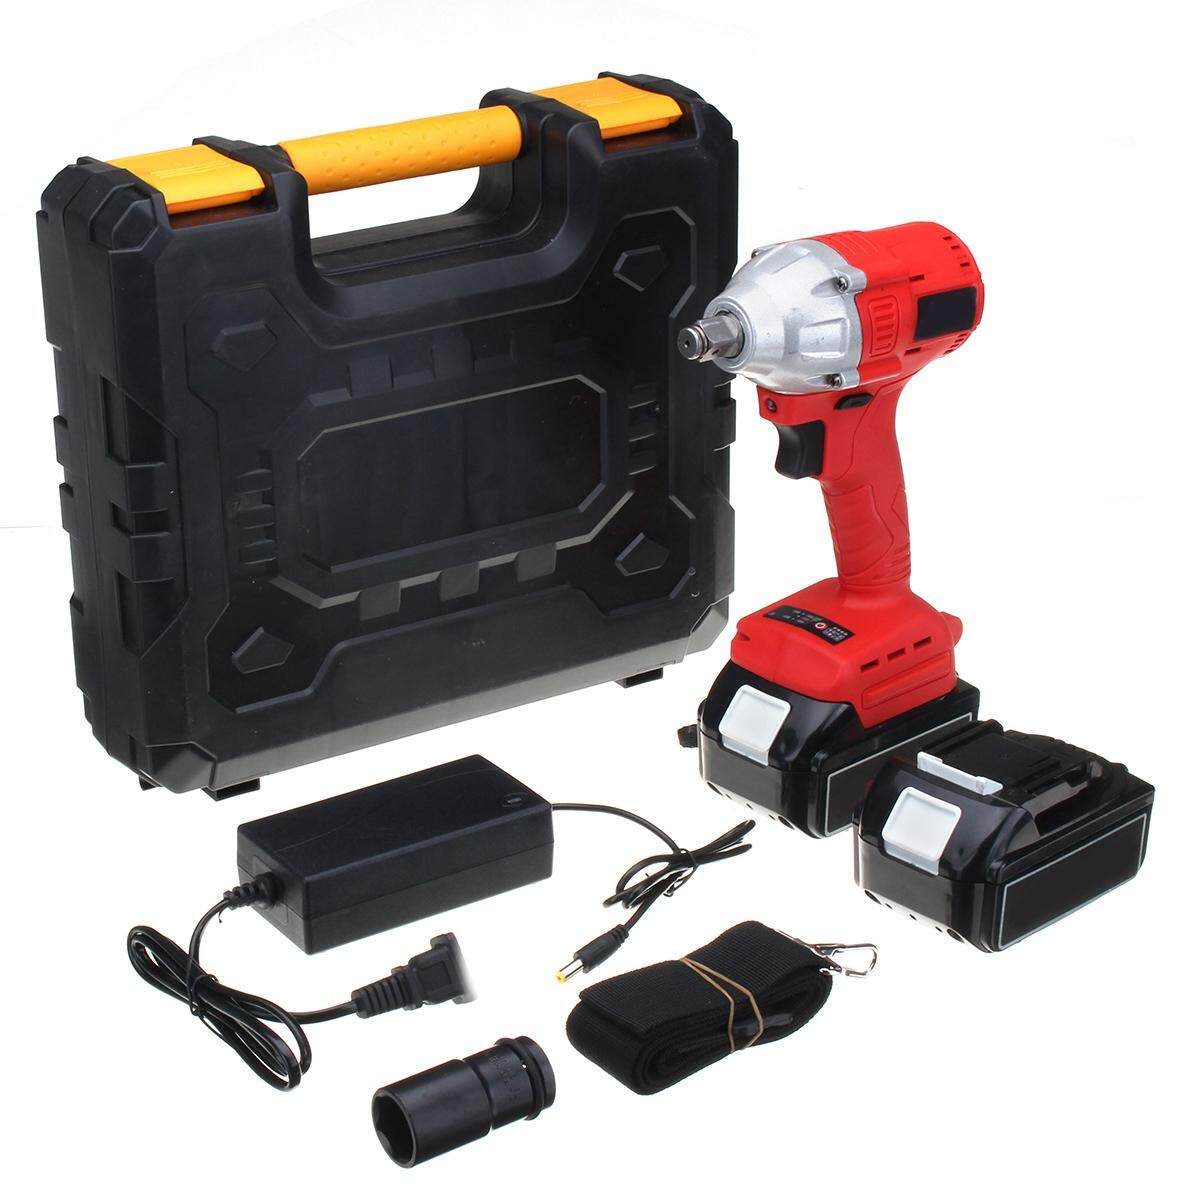 25V Electric Cordless Impact Wrench Power Rattle Car High Torque Driver Tool